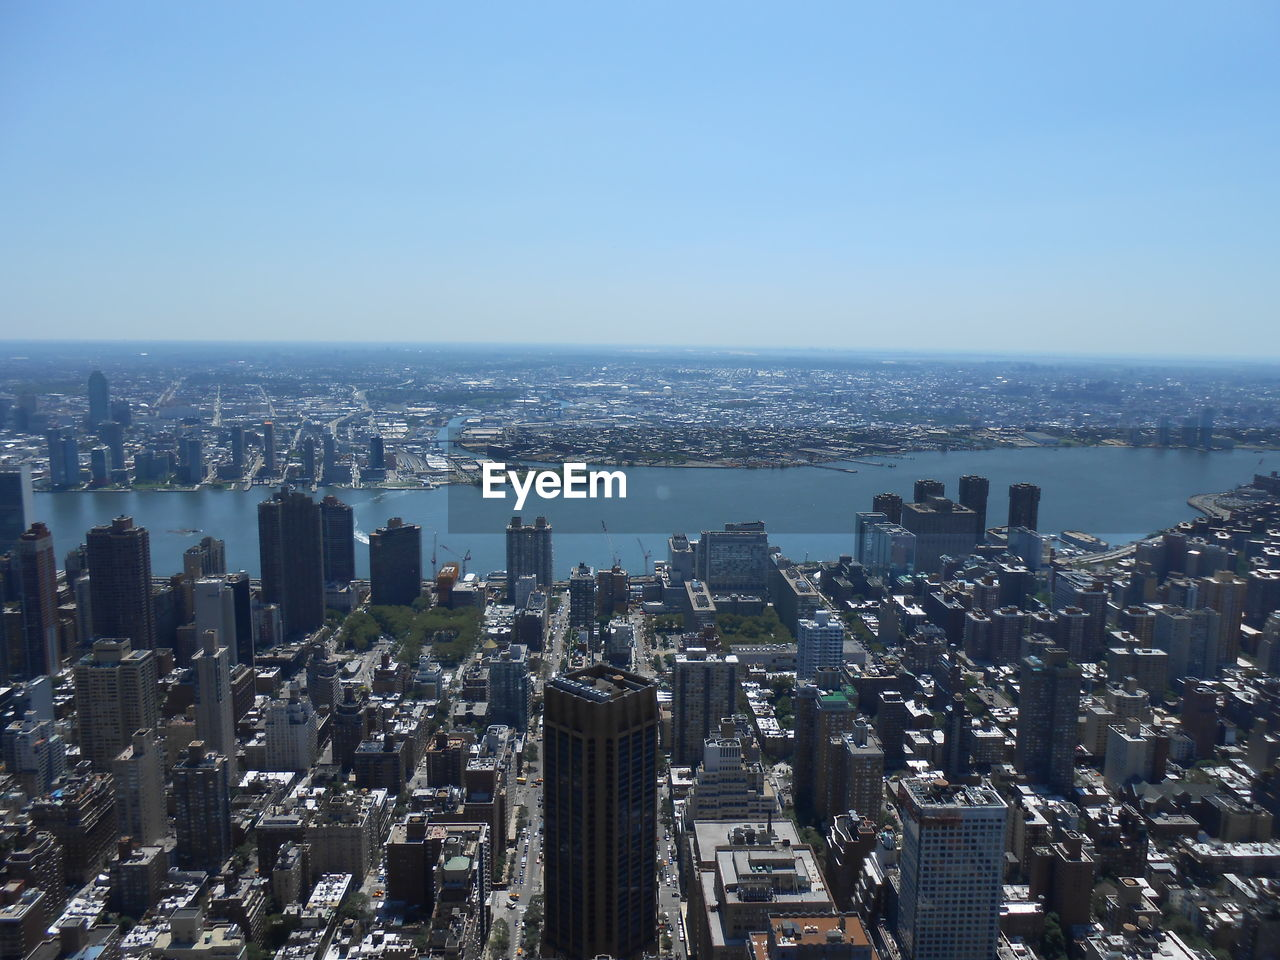 Aerial View Of City Buildings Against Clear Sky